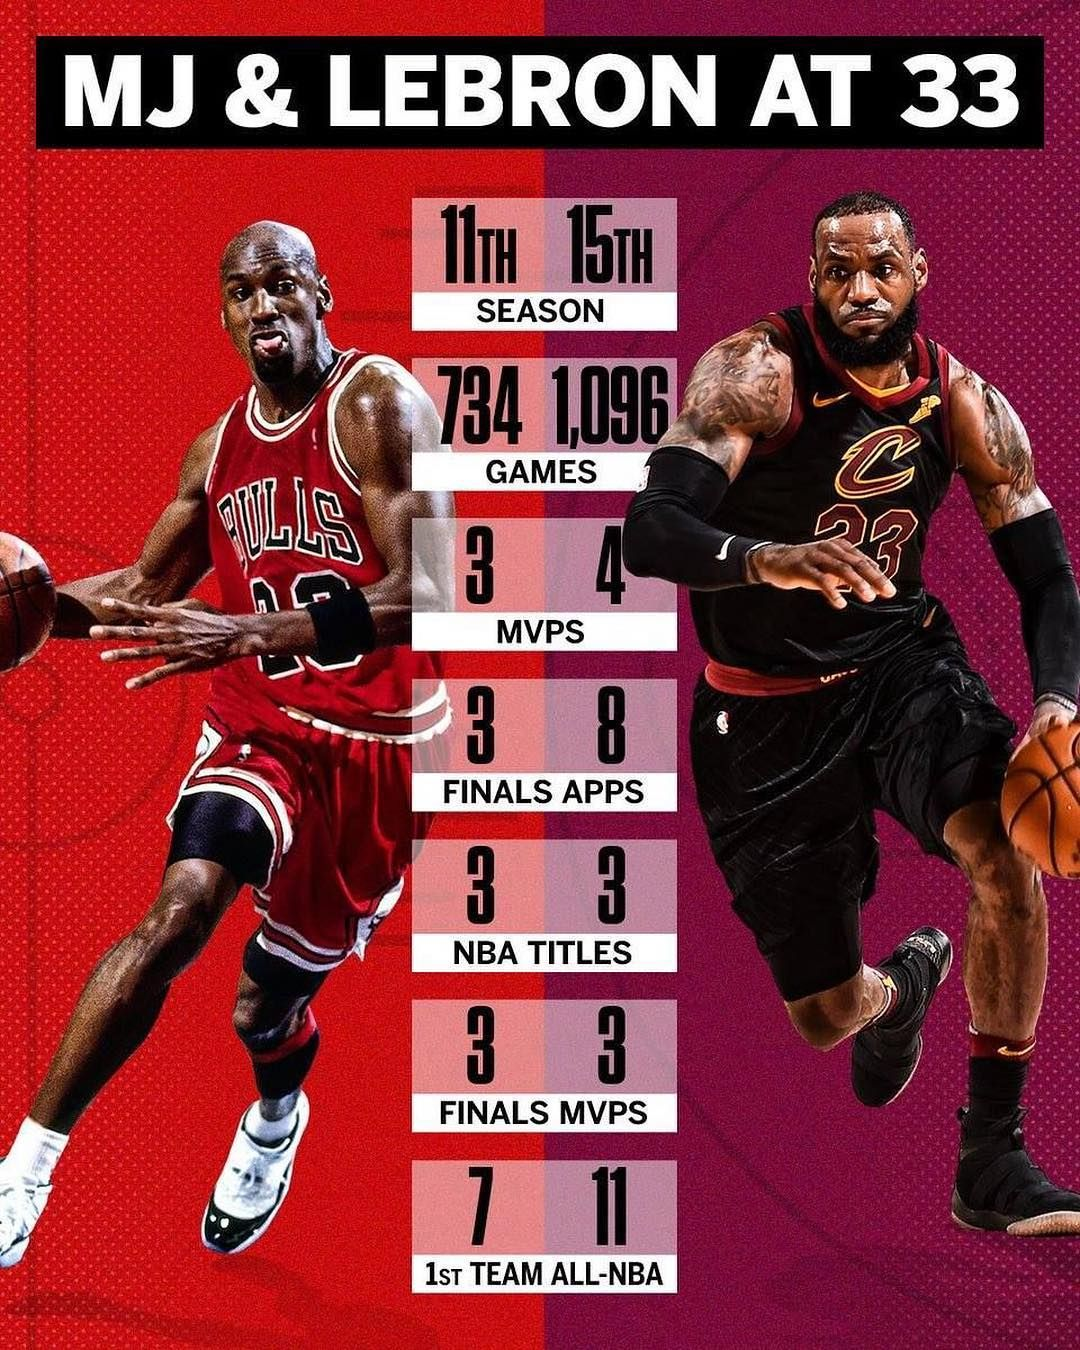 lebron > mj . and if mj is the goat how many finals did he